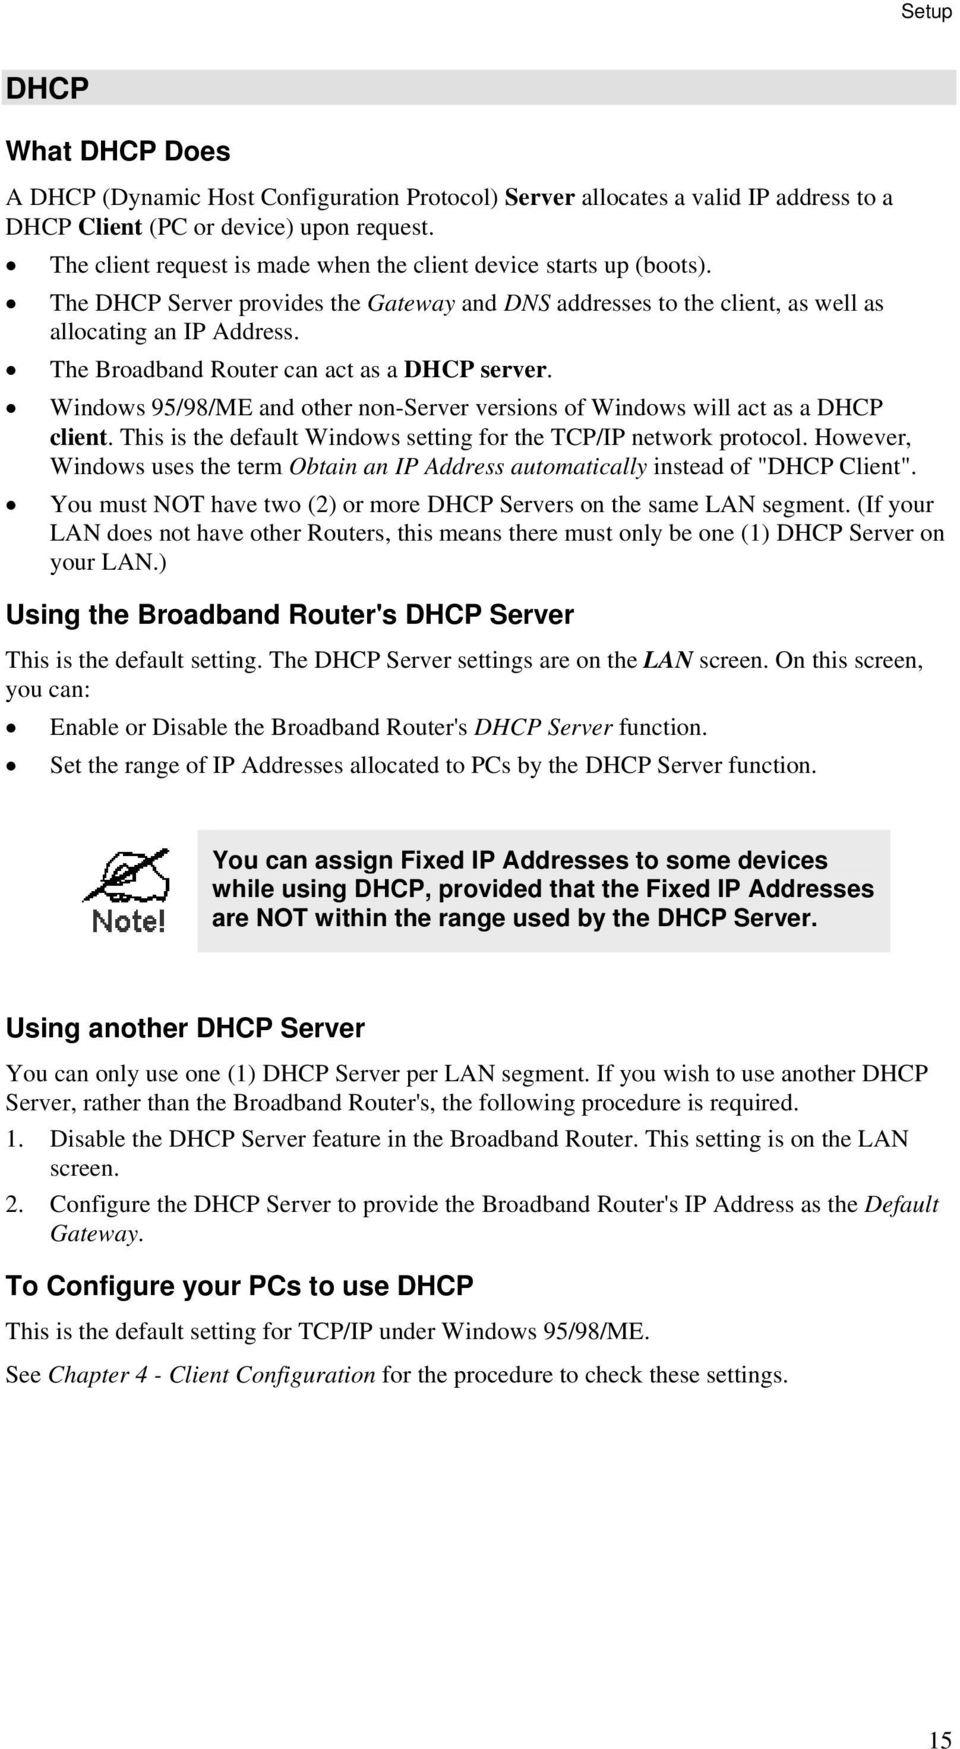 The Broadband Router can act as a DHCP server. Windows 95/98/ME and other non-server versions of Windows will act as a DHCP client. This is the default Windows setting for the TCP/IP network protocol.